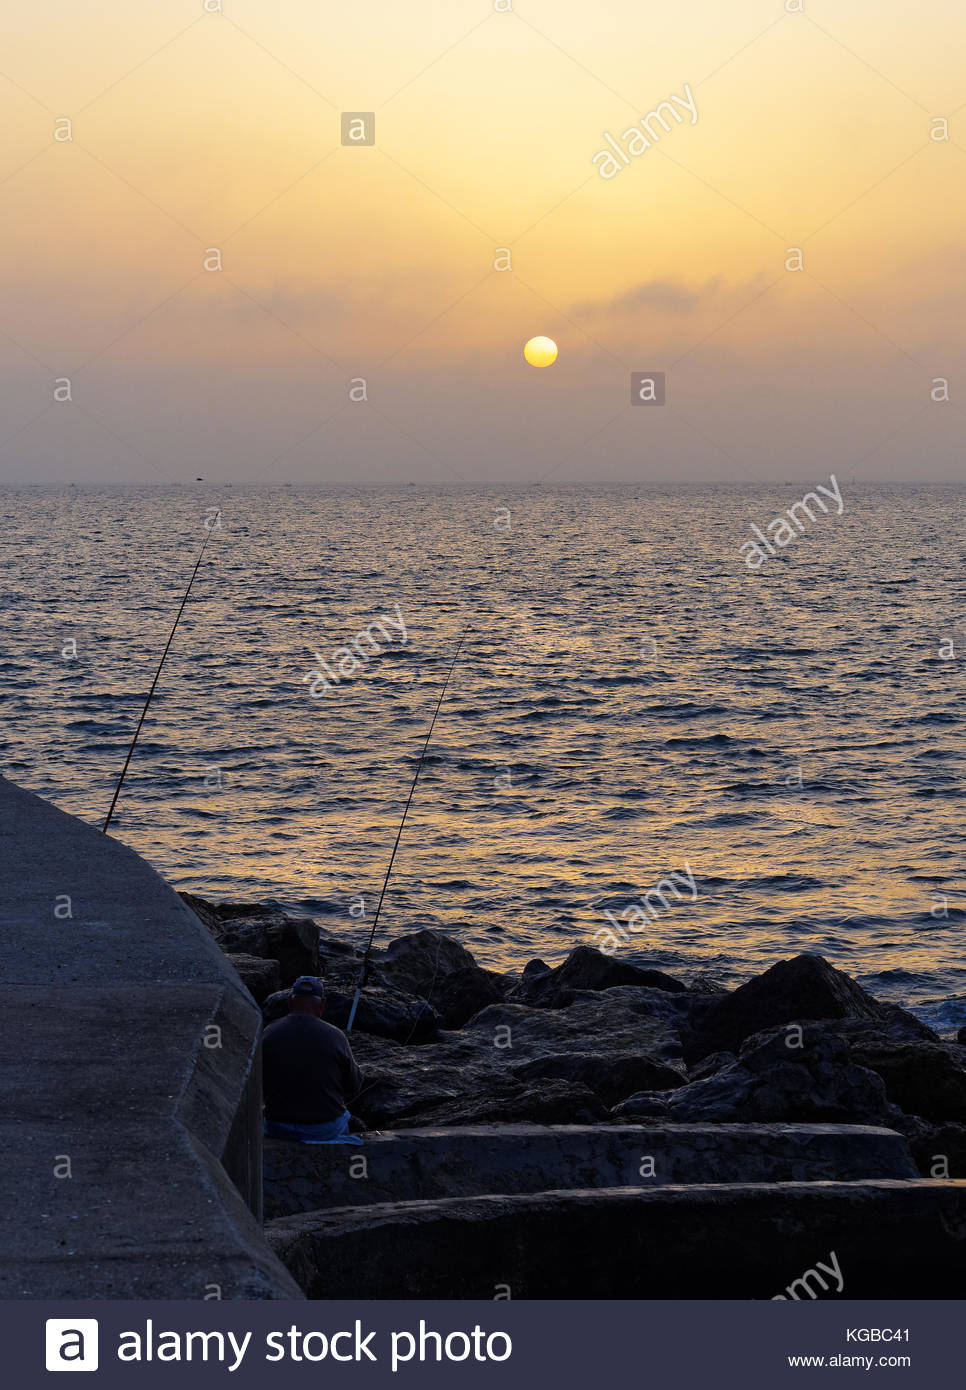 Fisherman on River Tagus shoreline, early morning sun with sea mist, Portugal - Stock Image